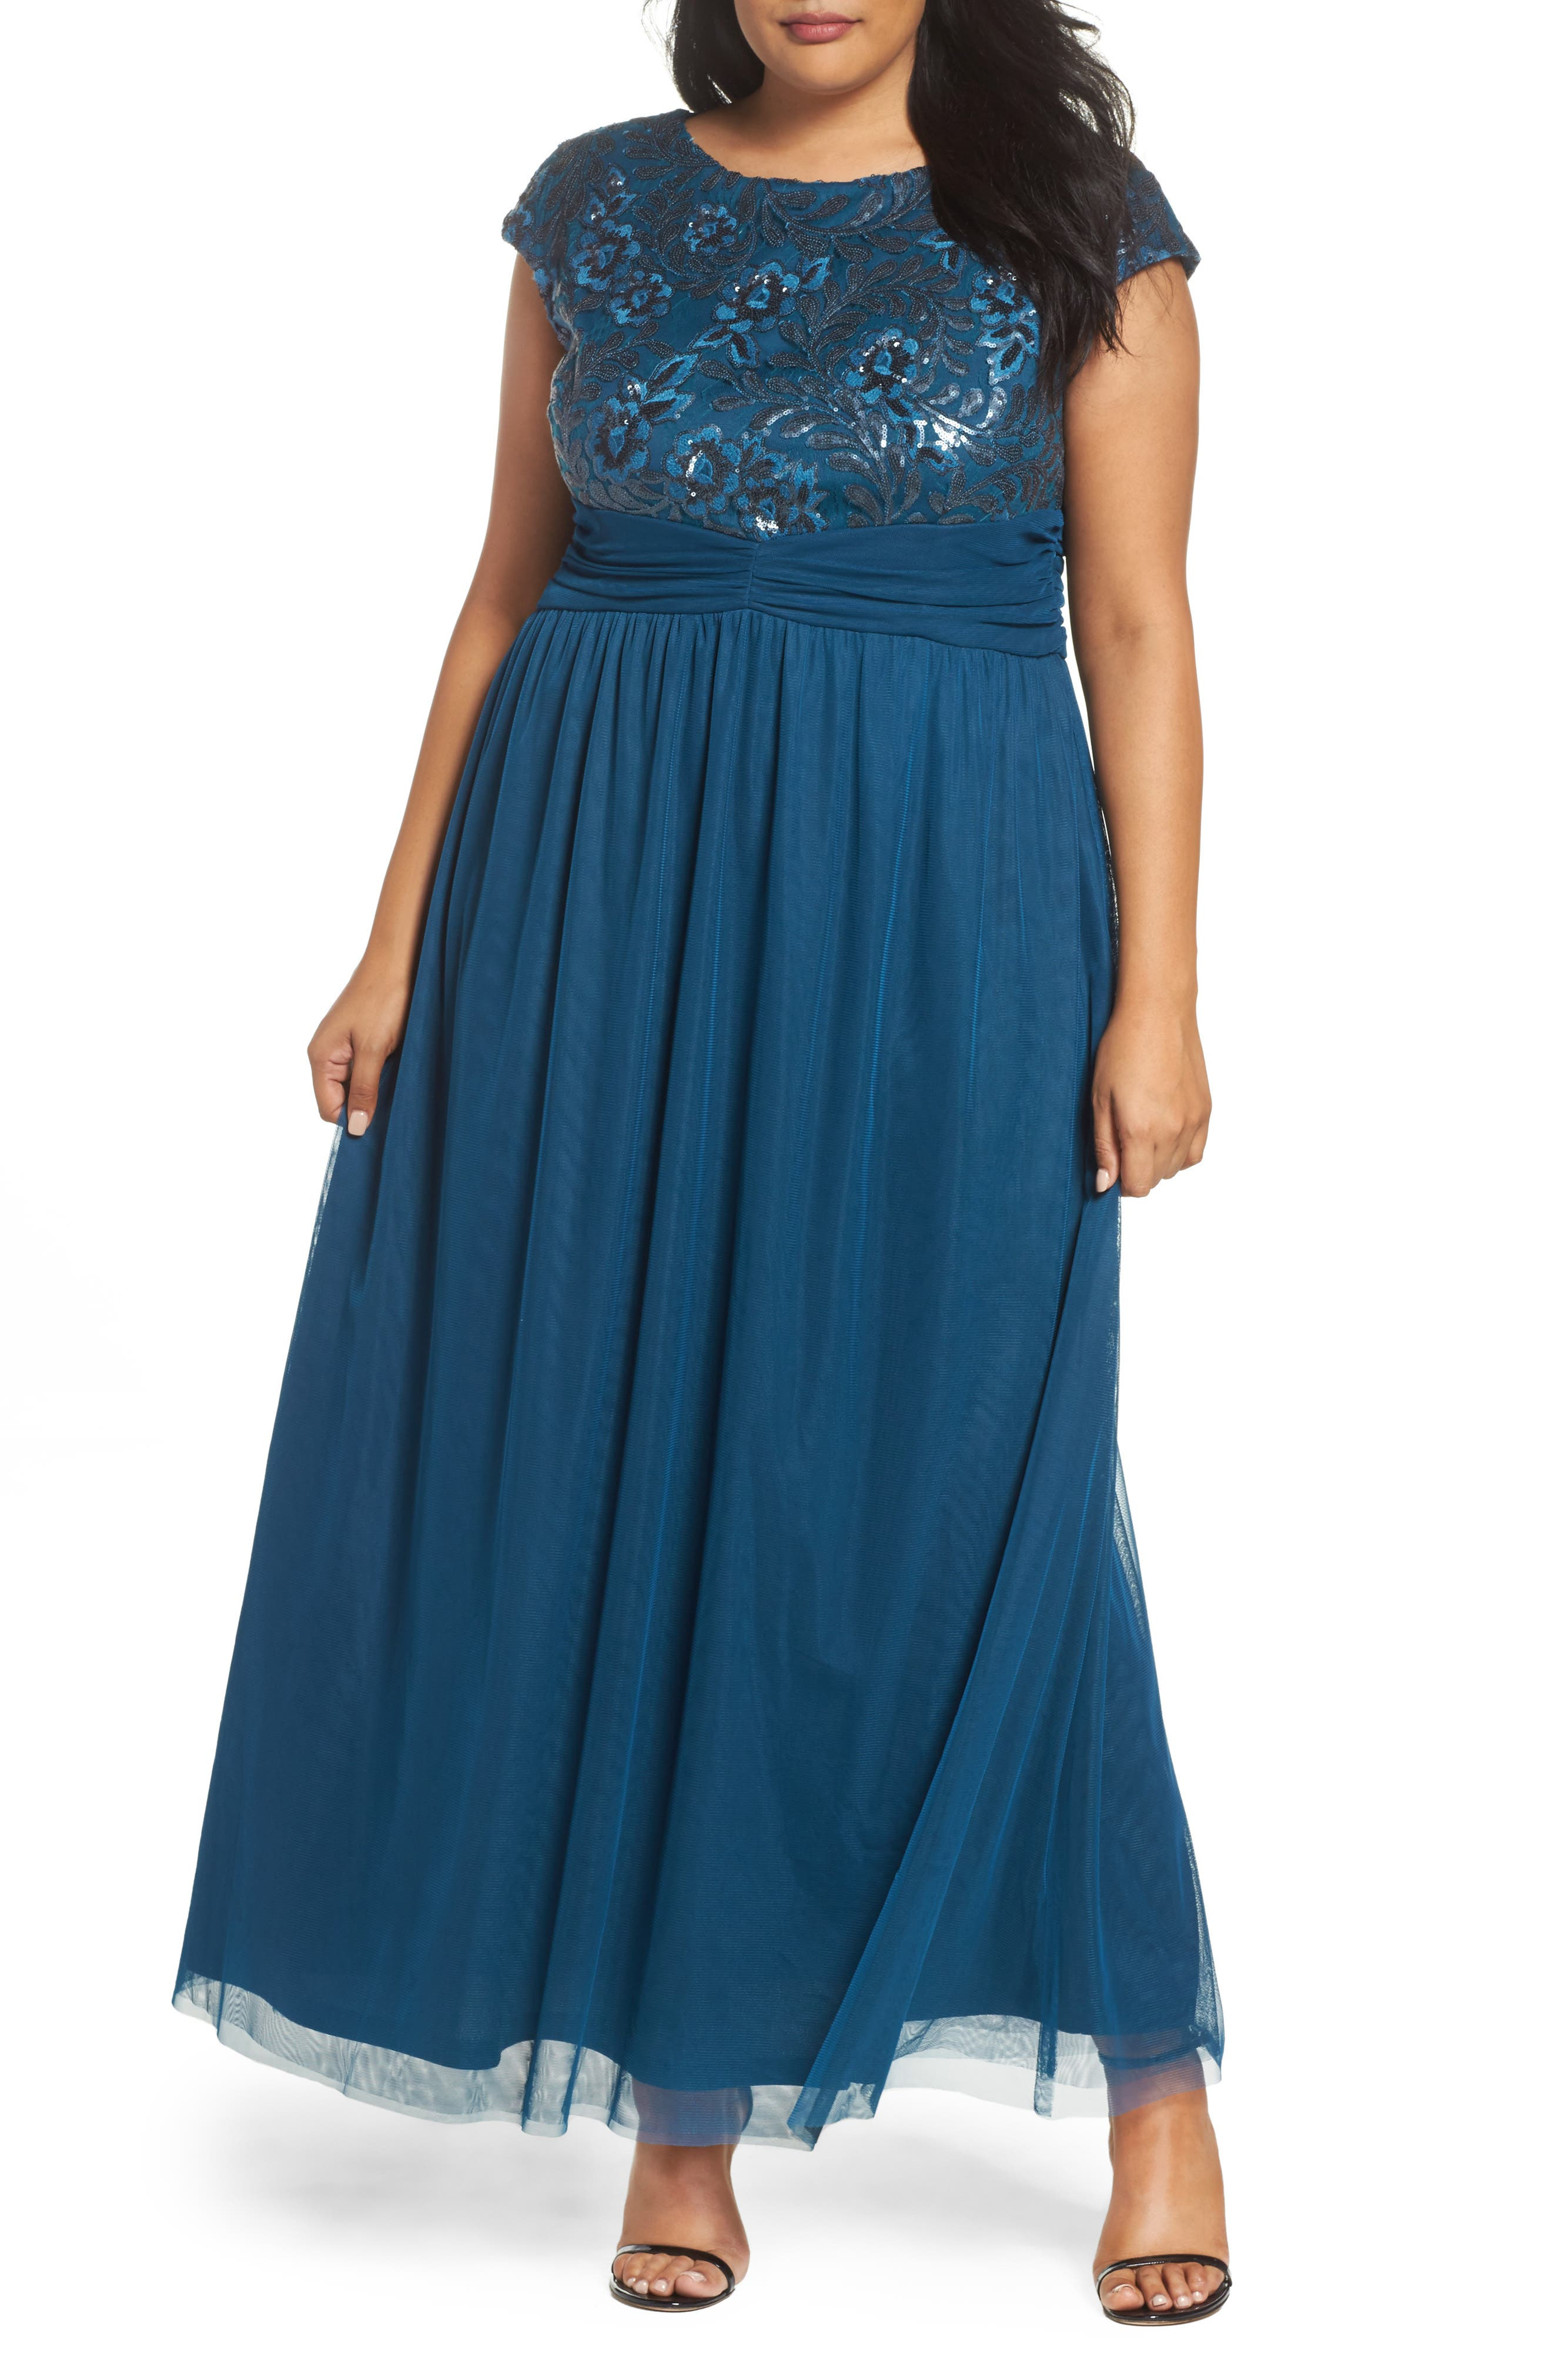 Main Image - Brianna Embellished Cap Sleeve Gown (Plus Size)